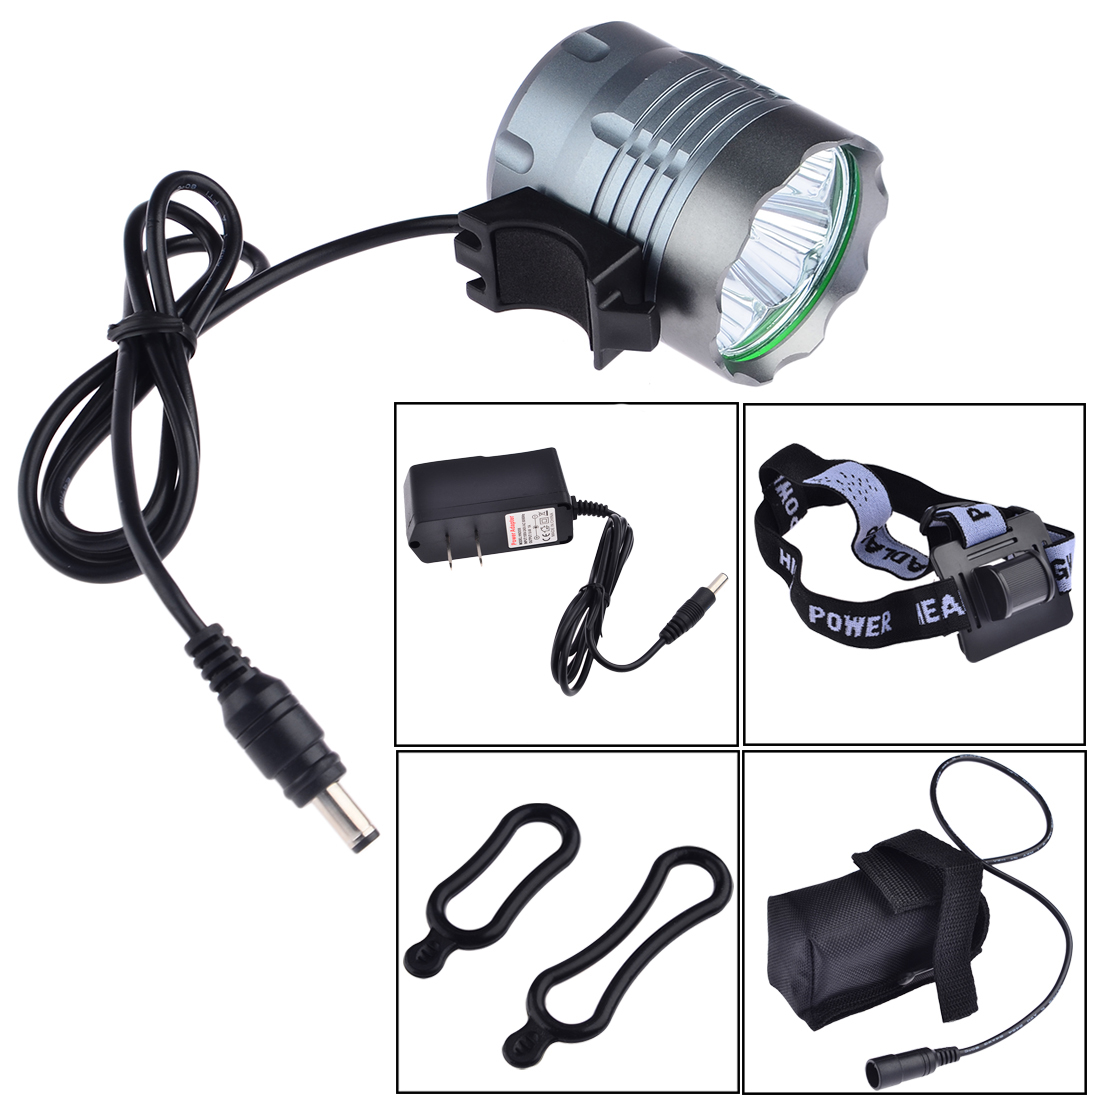 4800 Lumen Waterproof 4x Cree XML T6 LED Bicycle Light Bike Light Lamp +Battery Pack+Charger 3 Switch Modes sitemap 4 xml